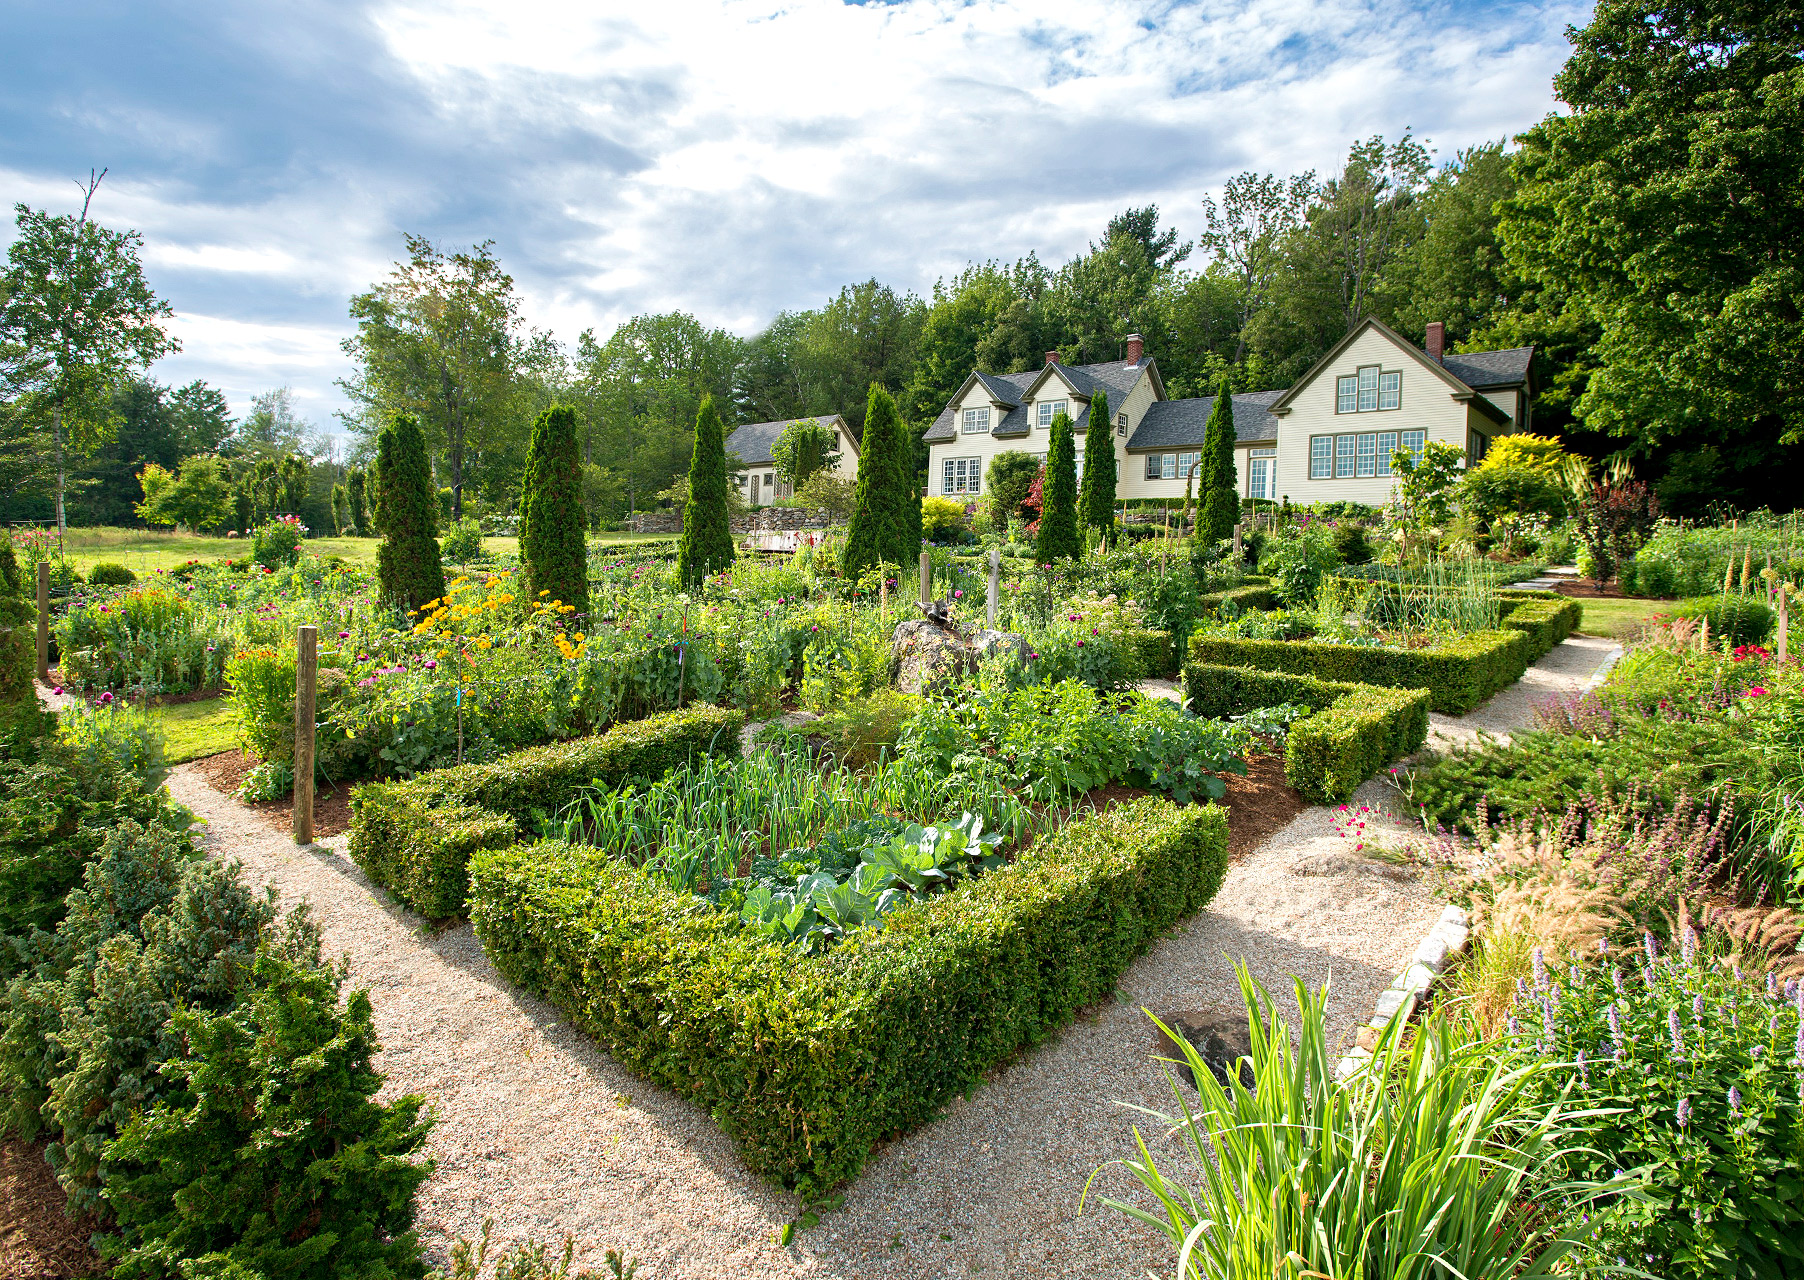 boxwood parterres with various planted vegetables